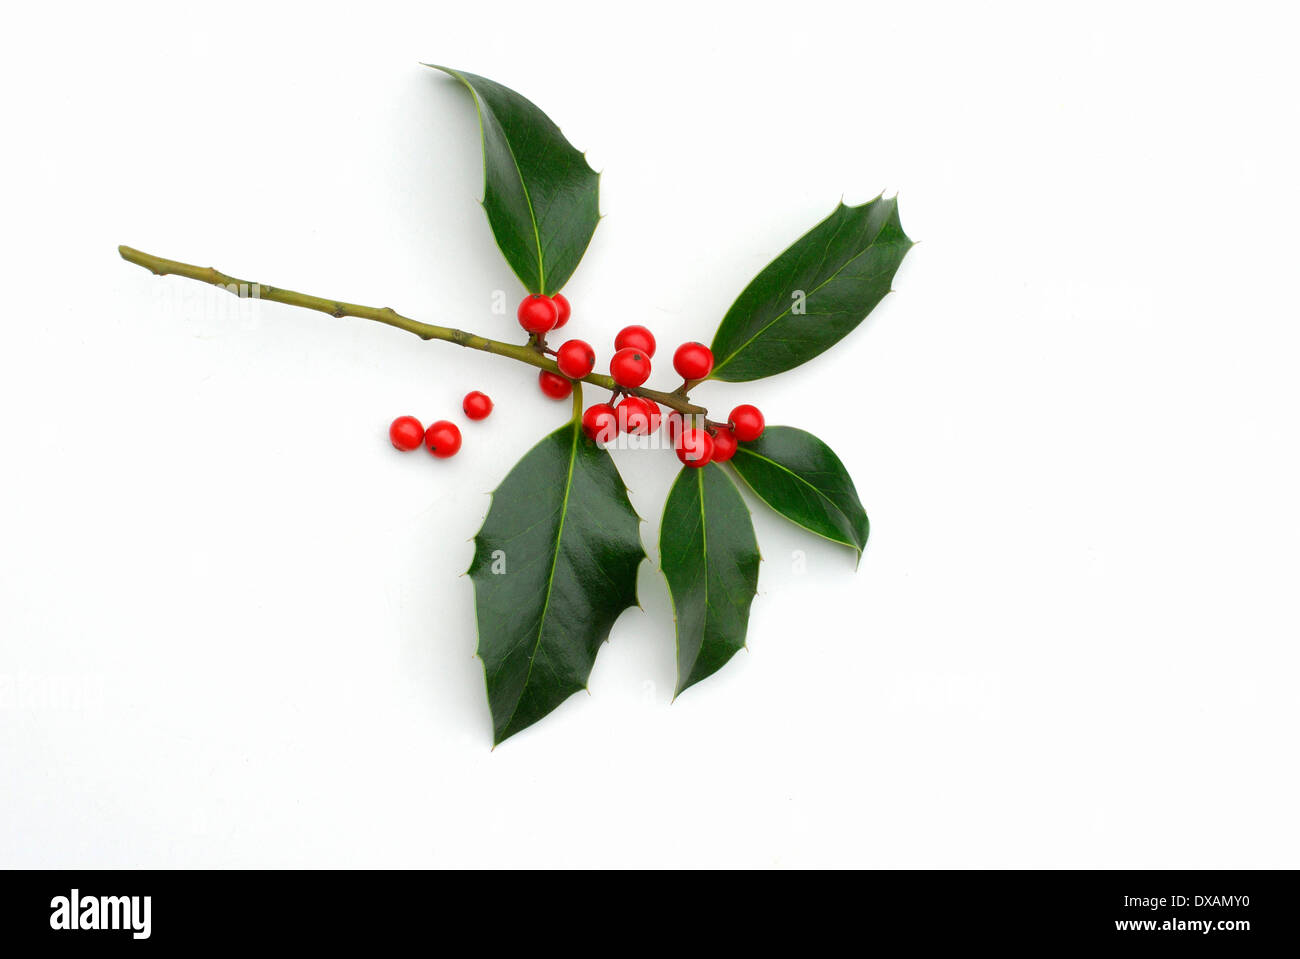 Holly Berries Cut Out Stock Photos & Holly Berries Cut Out